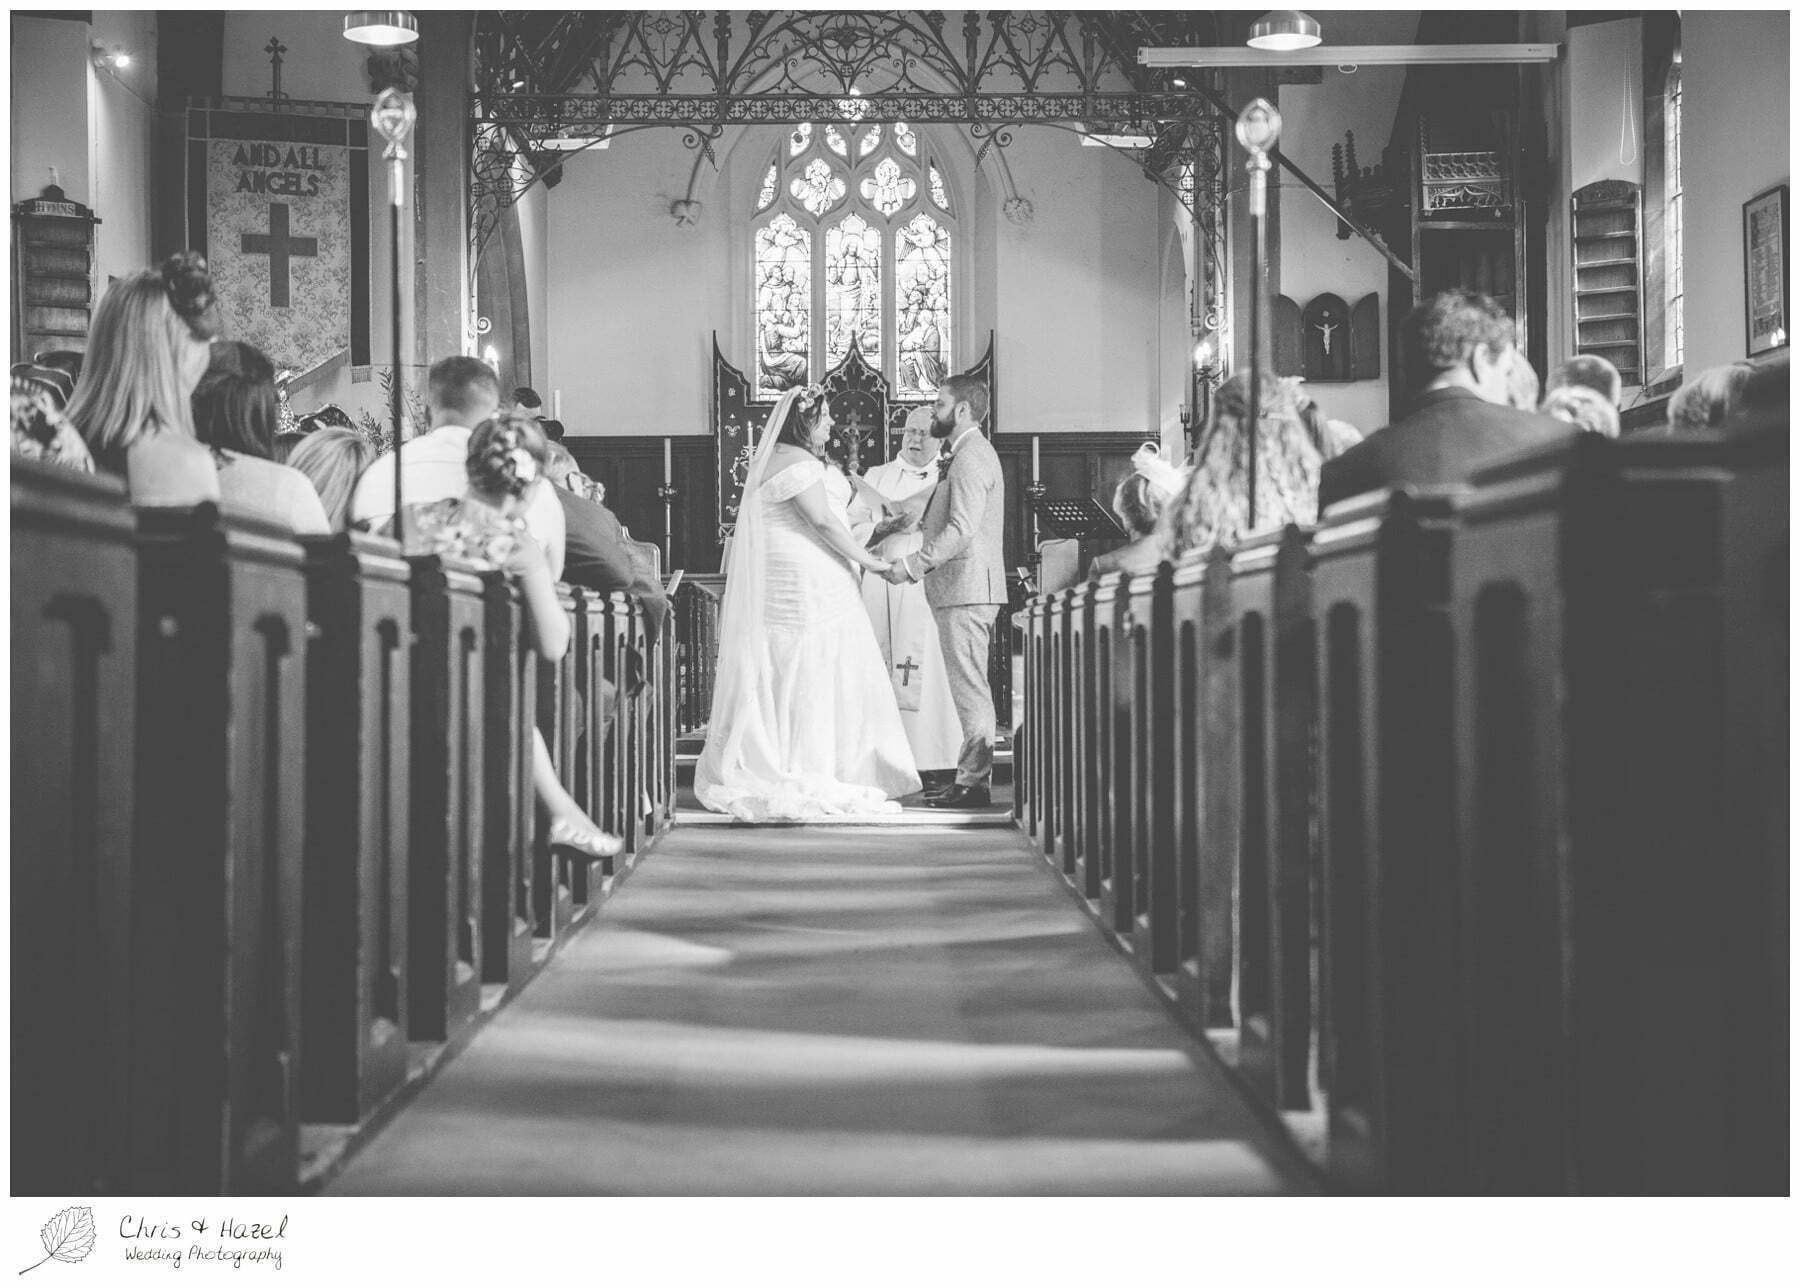 Bride and groom at altar, Hilperton Church, St Michael & All Angels' Church, Wedding Photography, Wiltshire Wedding Photographer Trowbridge, Chris and Hazel Wedding Photography